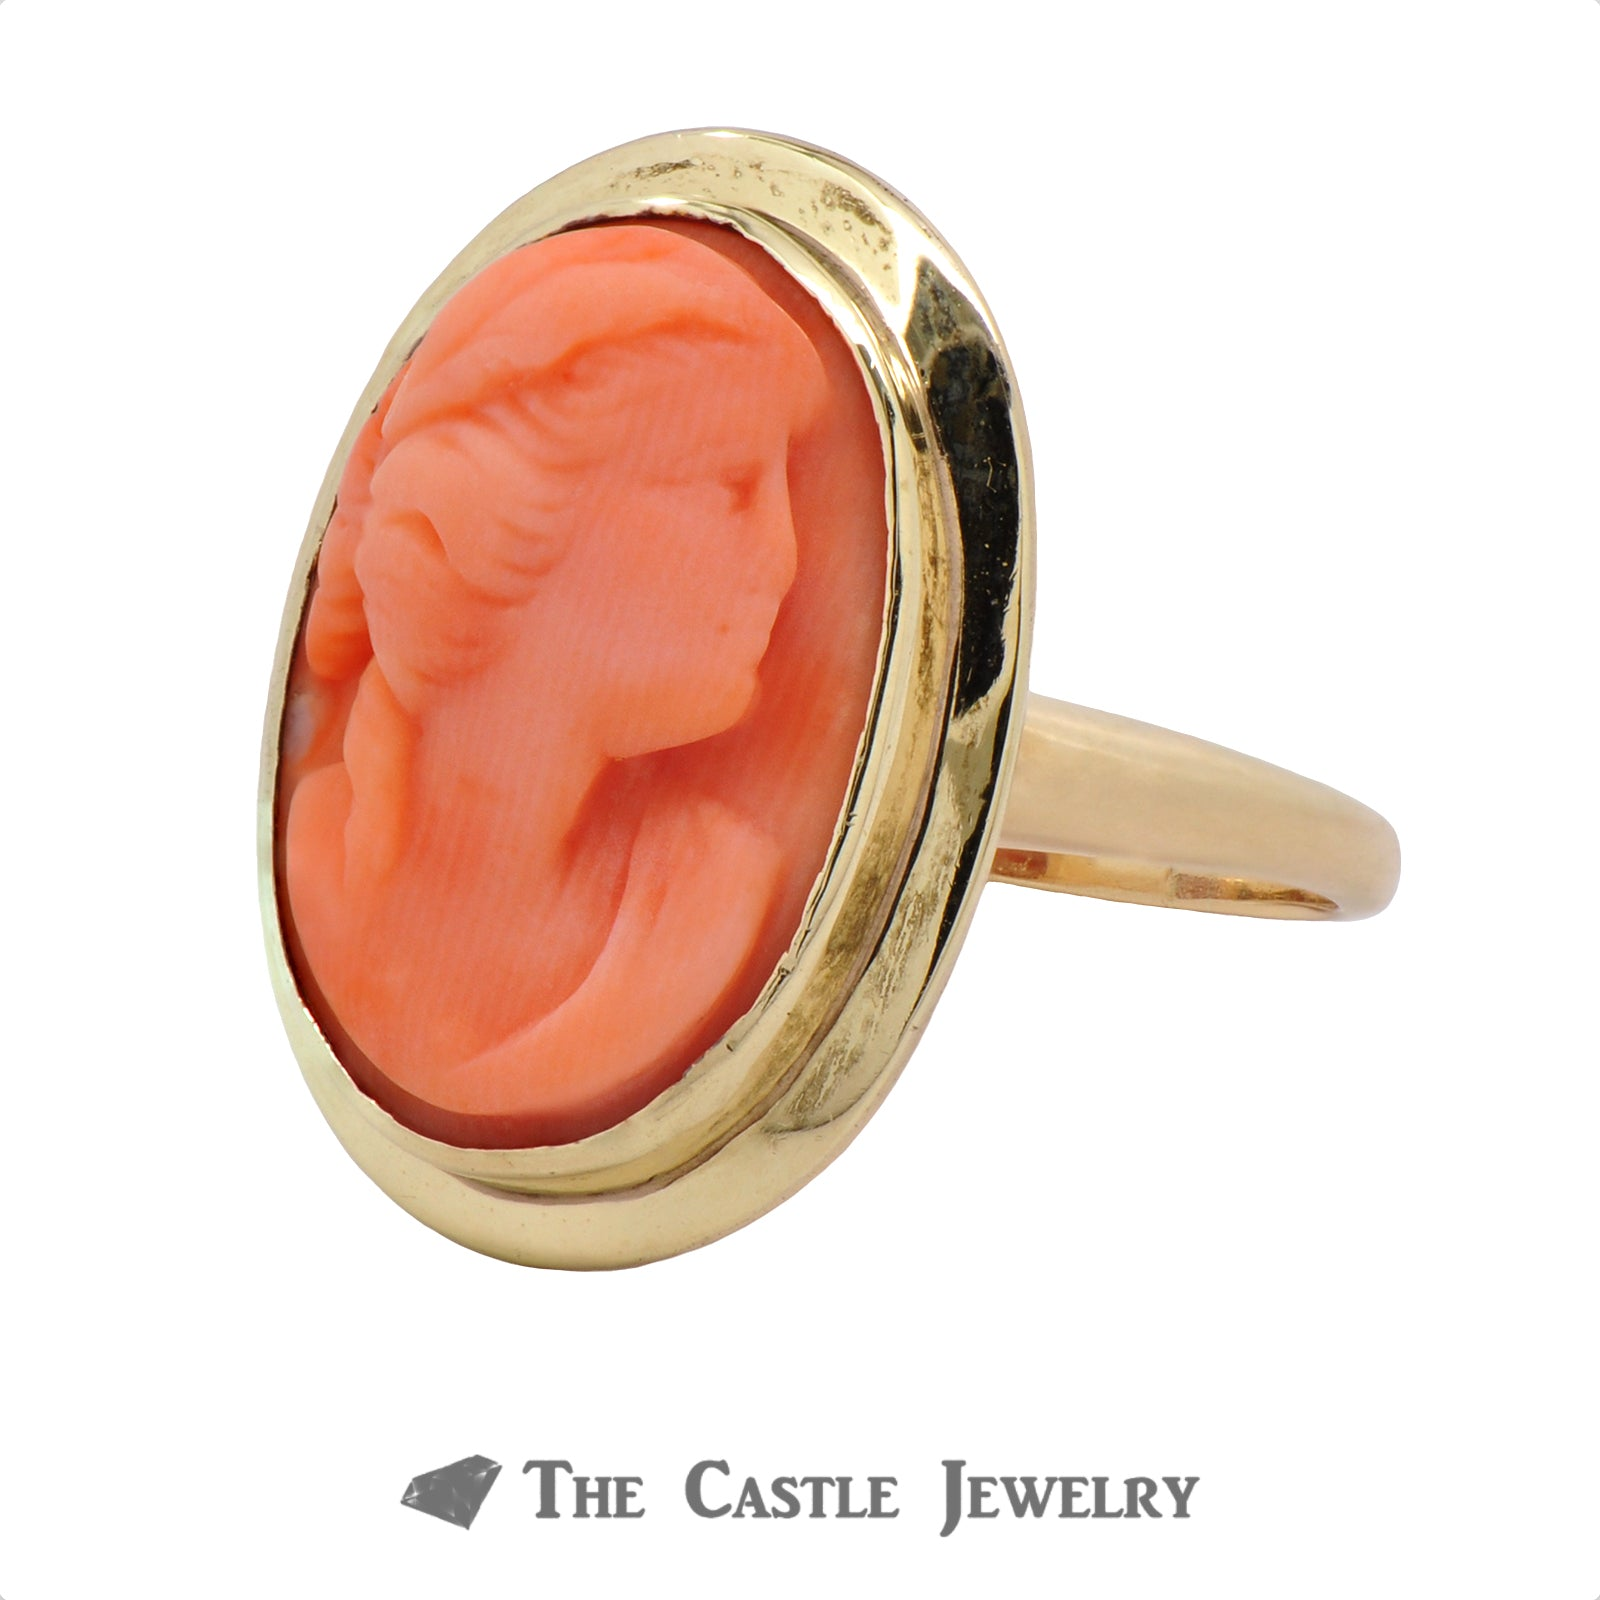 Vintage Style Pink Coral Cameo Ring In 14K Yellow Gold